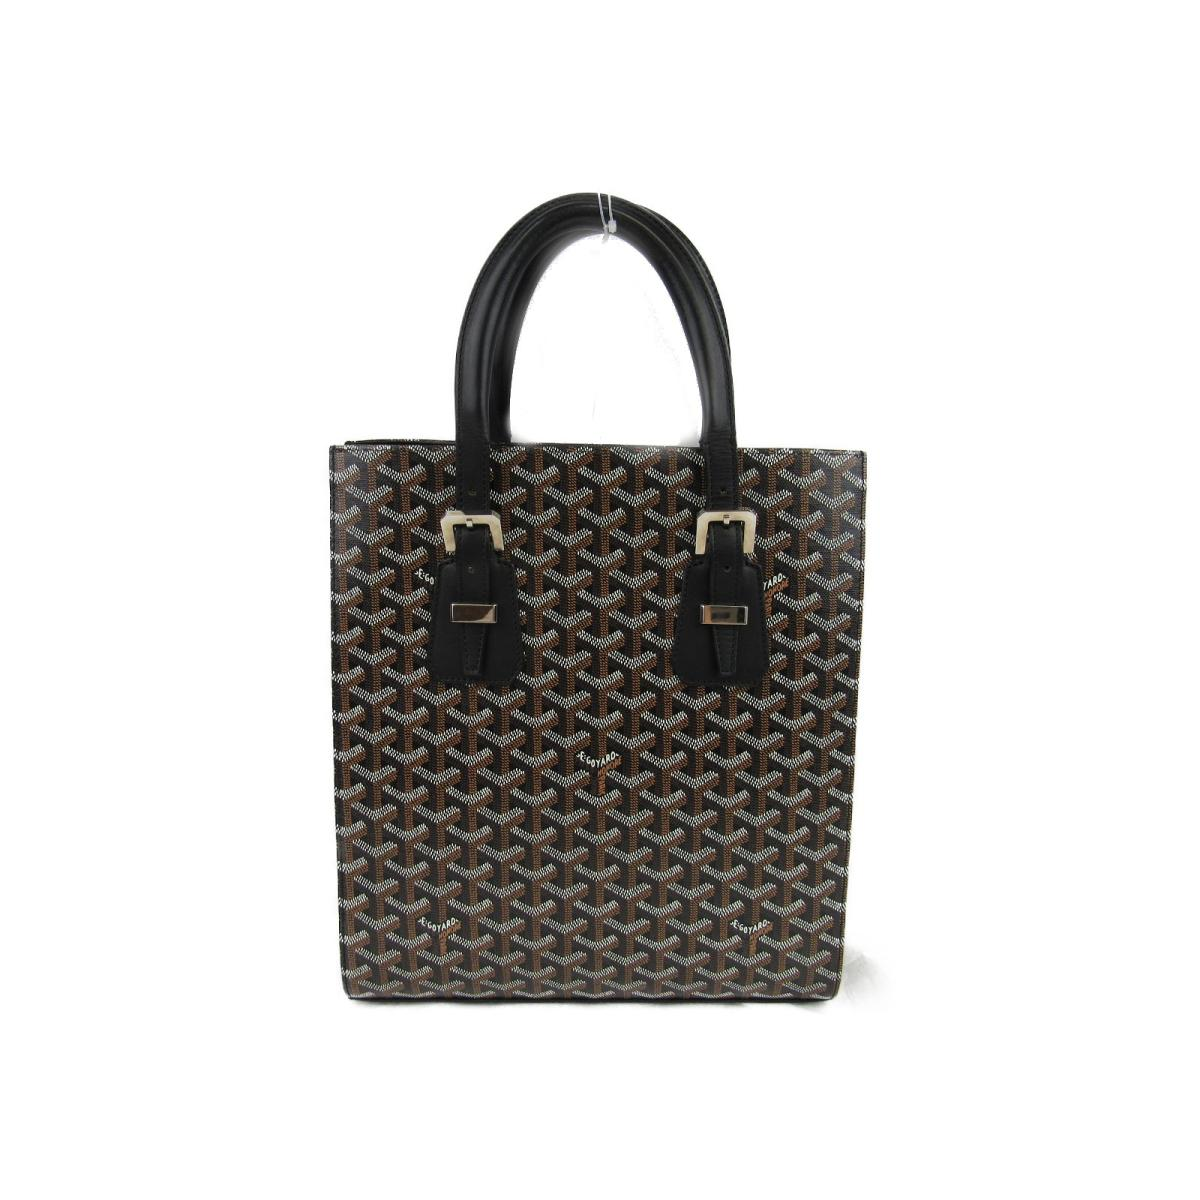 fda493dc07200 BRANDOFF  (Free shipping) Auth GOYARD Comores PM Tote Hand Bag  Leather coated canvas Black Used Vintage